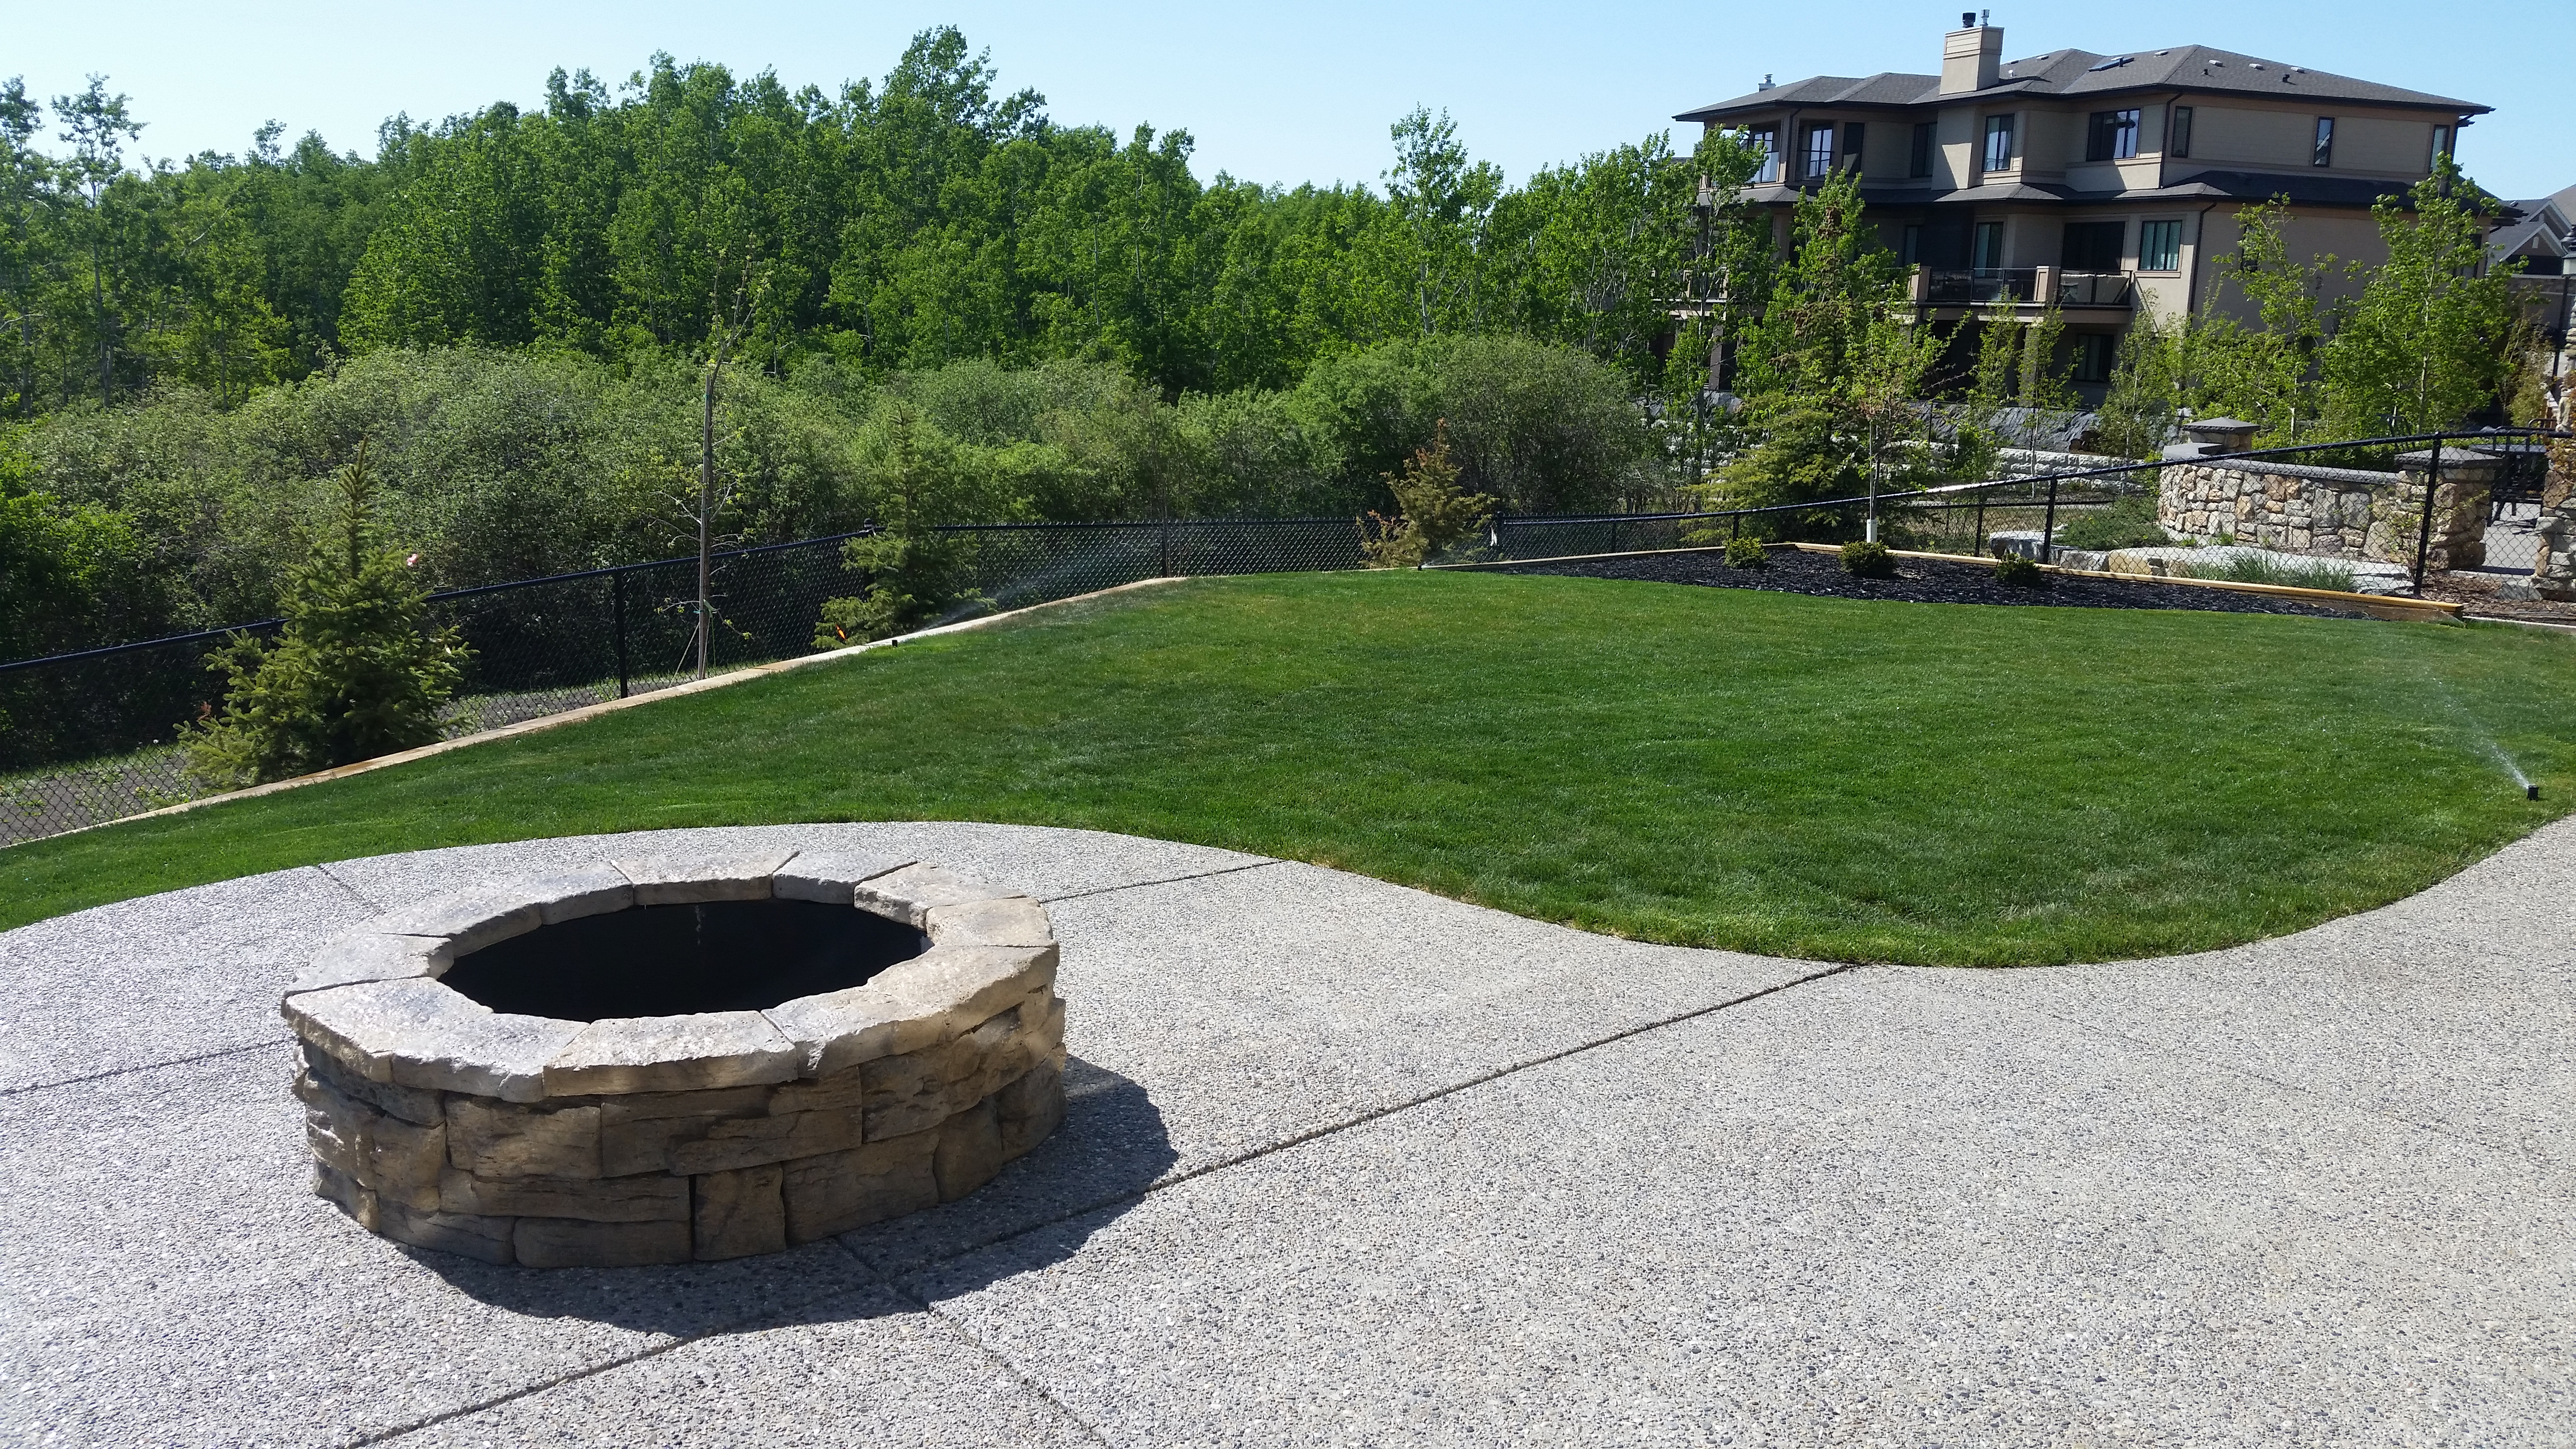 chestermere-calgary-exposed-aggregate-concrete-contractor-firepit-chestermere-landscaping